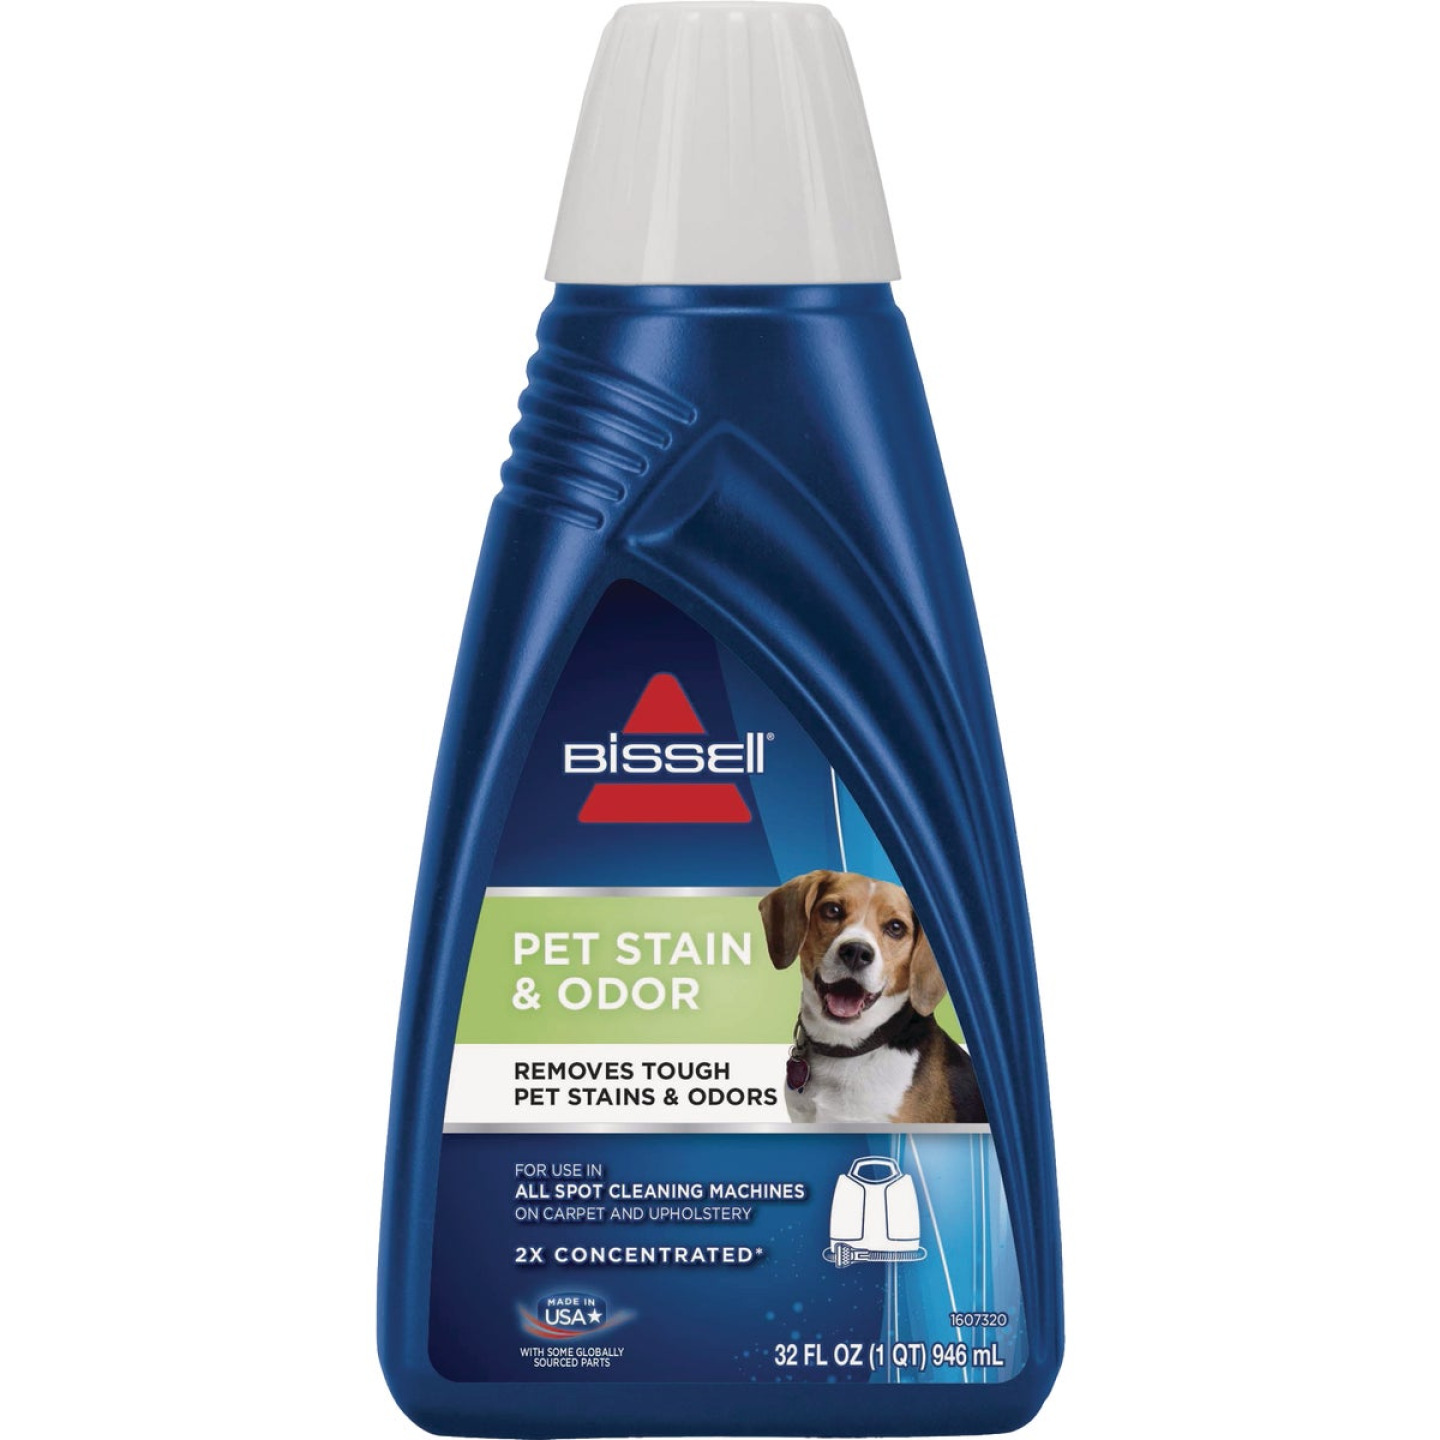 Bissell 32 Oz. Pet Stain & Odor Remover Carpet Cleaner Image 1